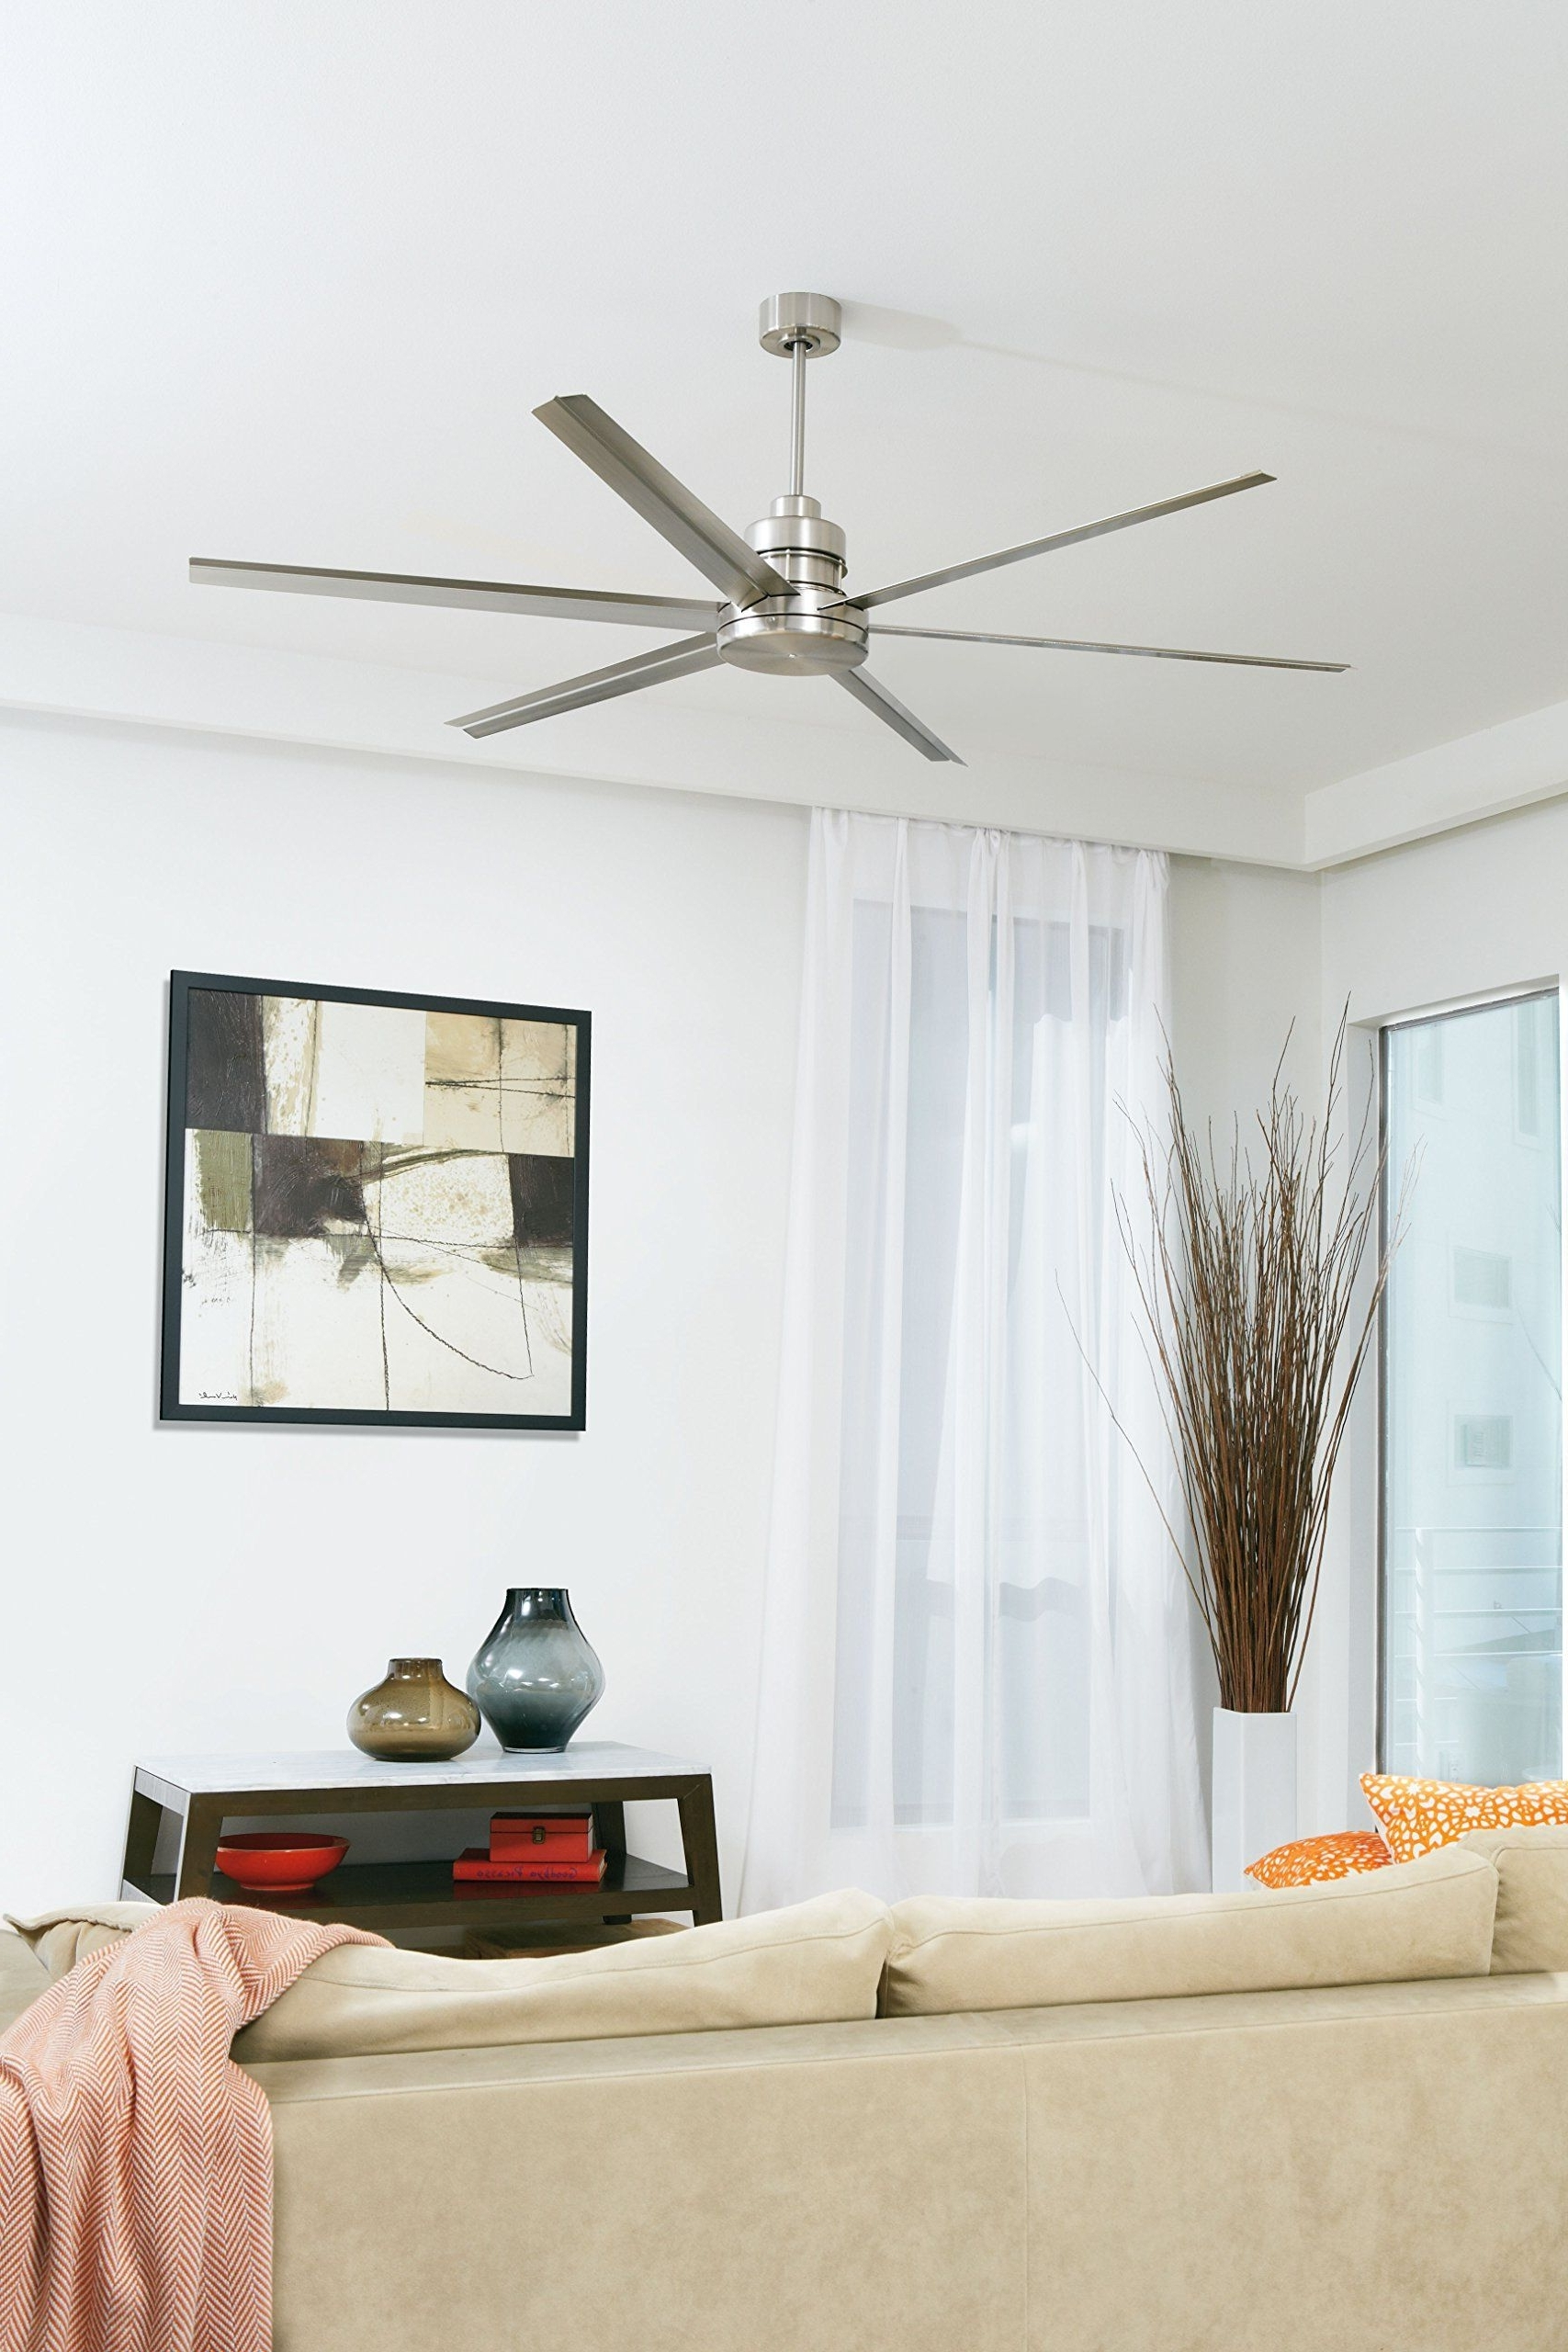 Recent 72 Inch Outdoor Ceiling Fans With Light With Regard To Craftmade Mnd72Esp6 Mondo 72 Inch Espresso Six Blade Metal Outdoor (View 16 of 20)